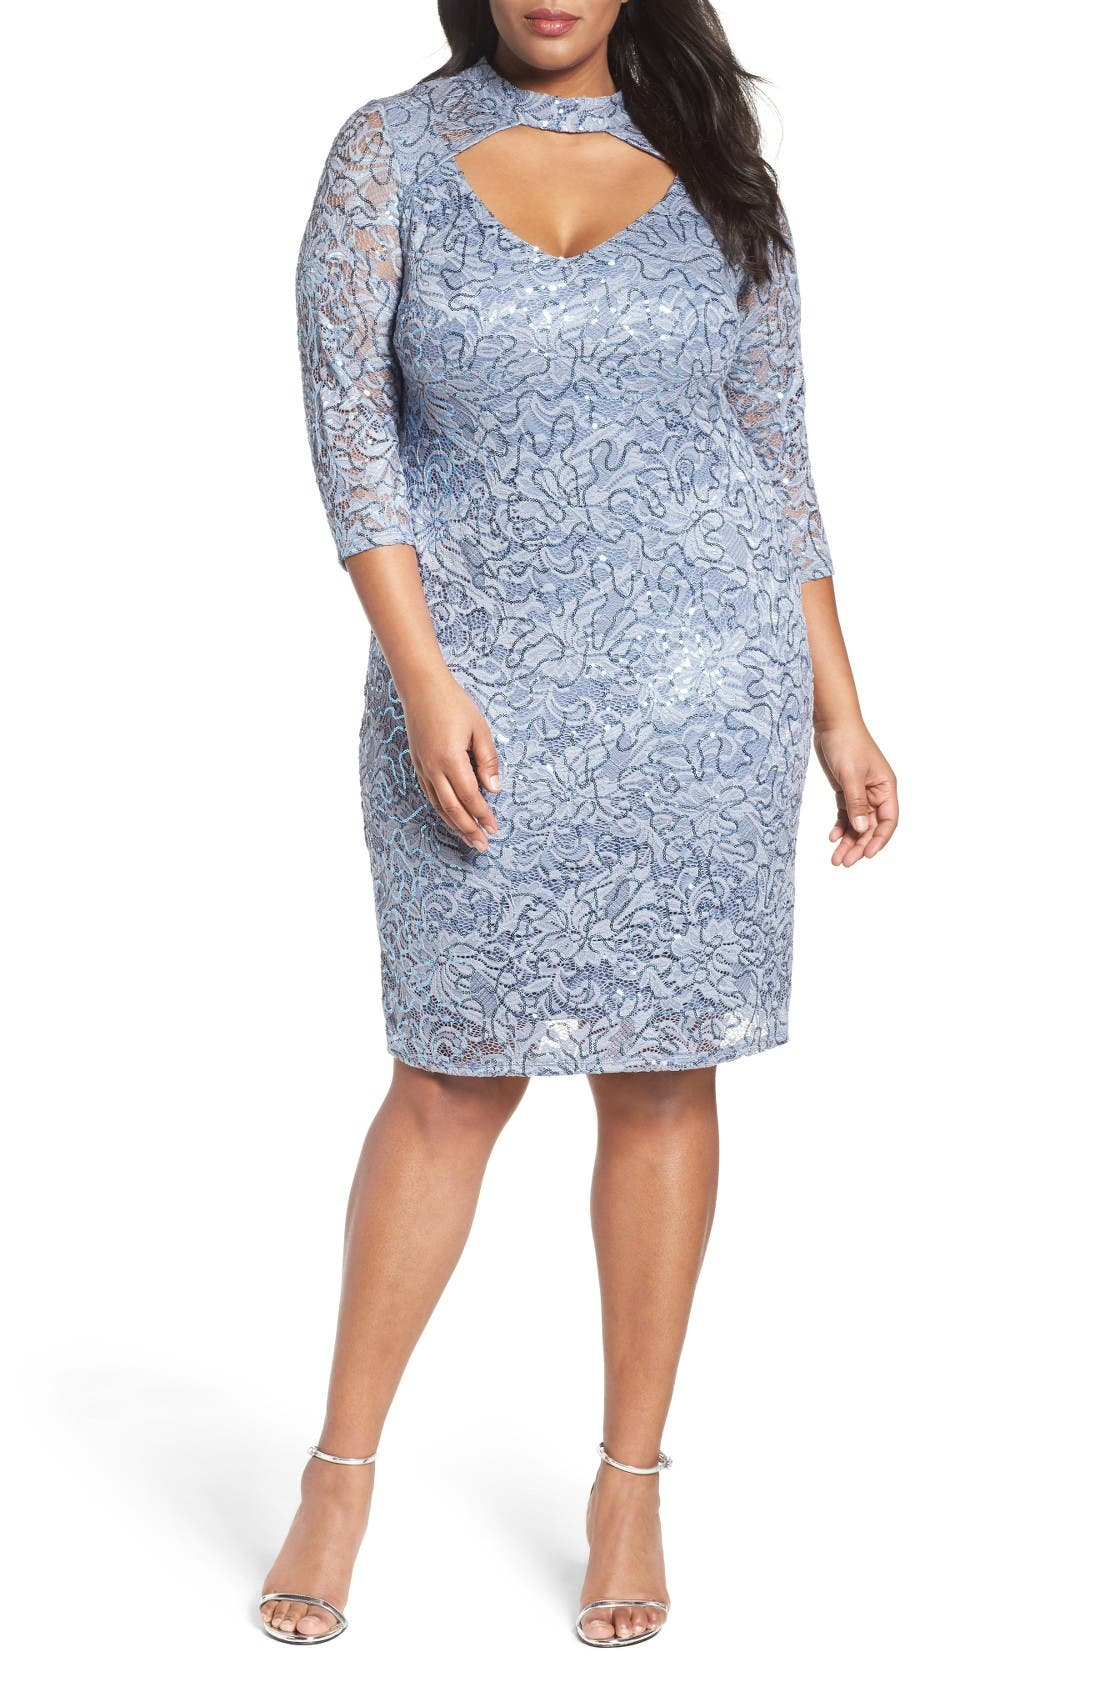 Main Image - Marina Cutout Sequin Lace Sheath Dress (Plus Size)